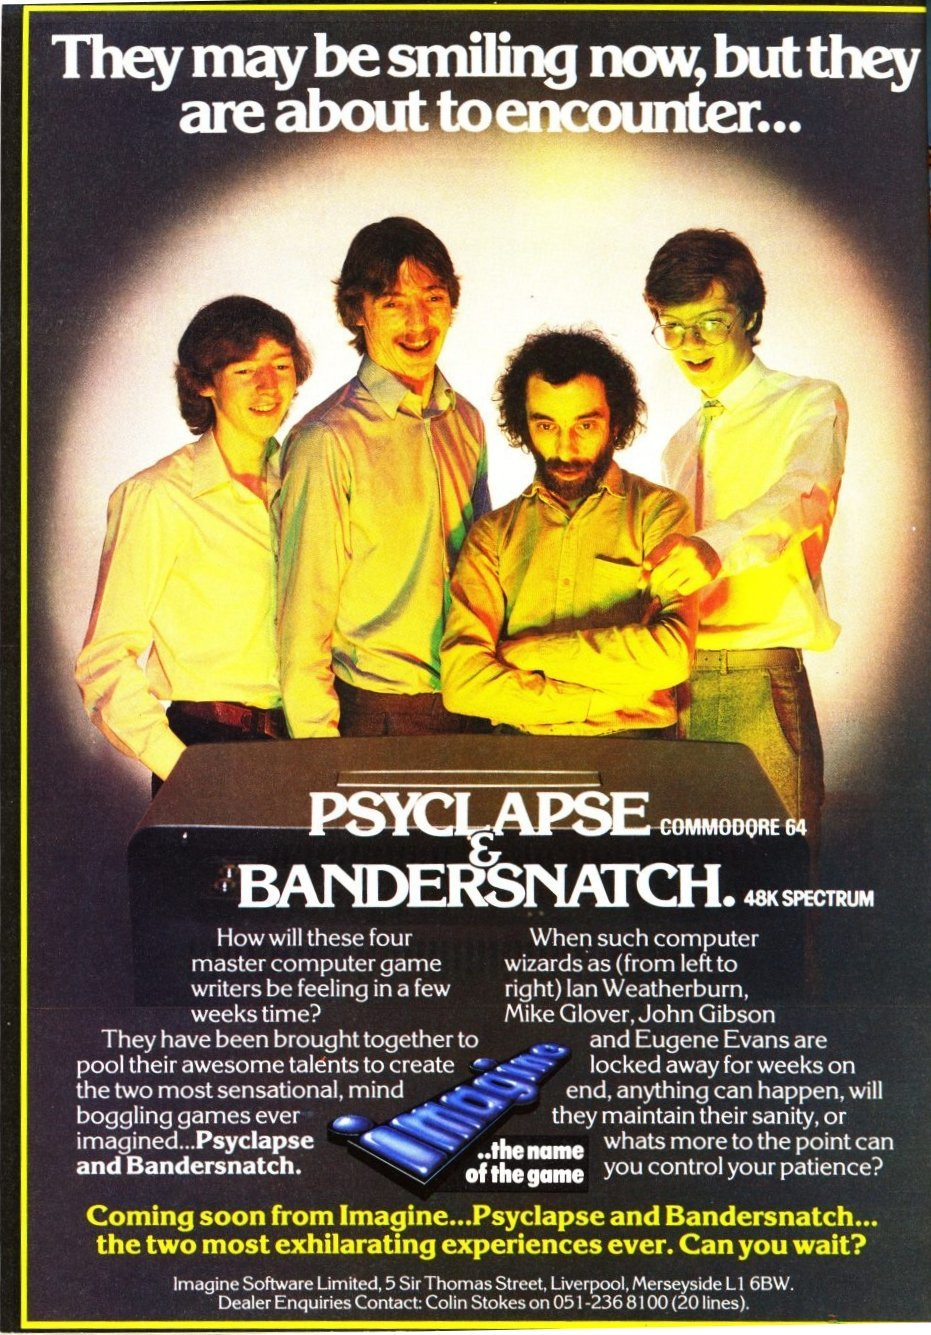 PDc2P3b 25 Things You Didn't Know About Black Mirror: Bandersnatch